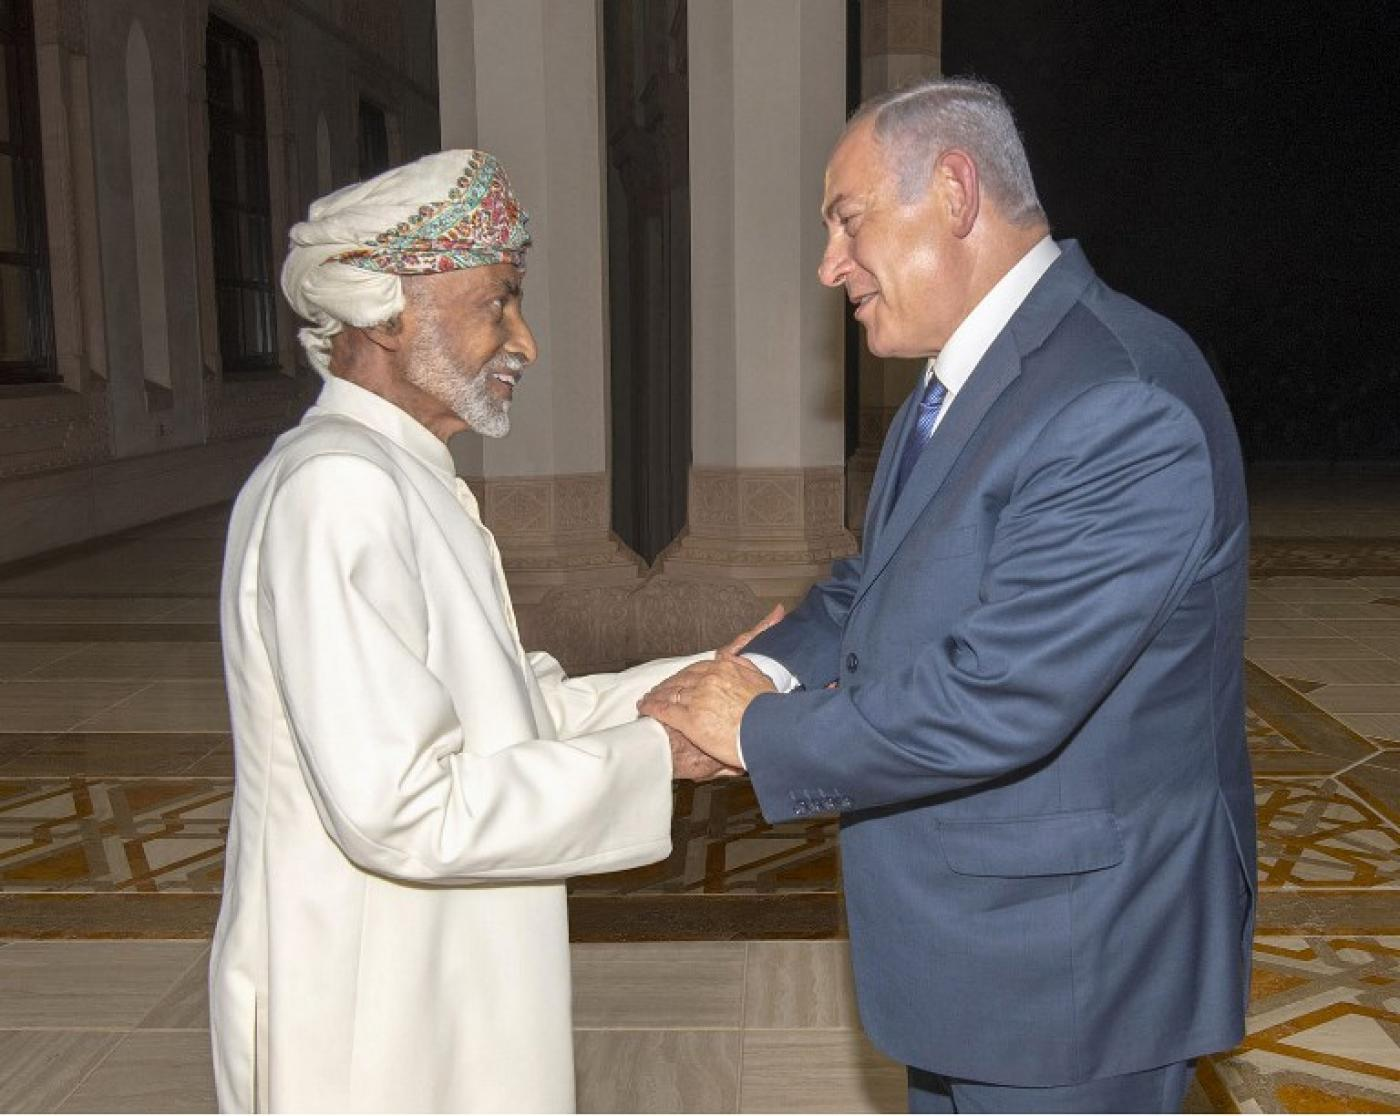 A handout picture released by the Omani Royal Palace shows Oman's Sultan Qaboos, left, with Israeli Prime Minister Benjamin Netanyahu in Muscat on 26 October (AFP)